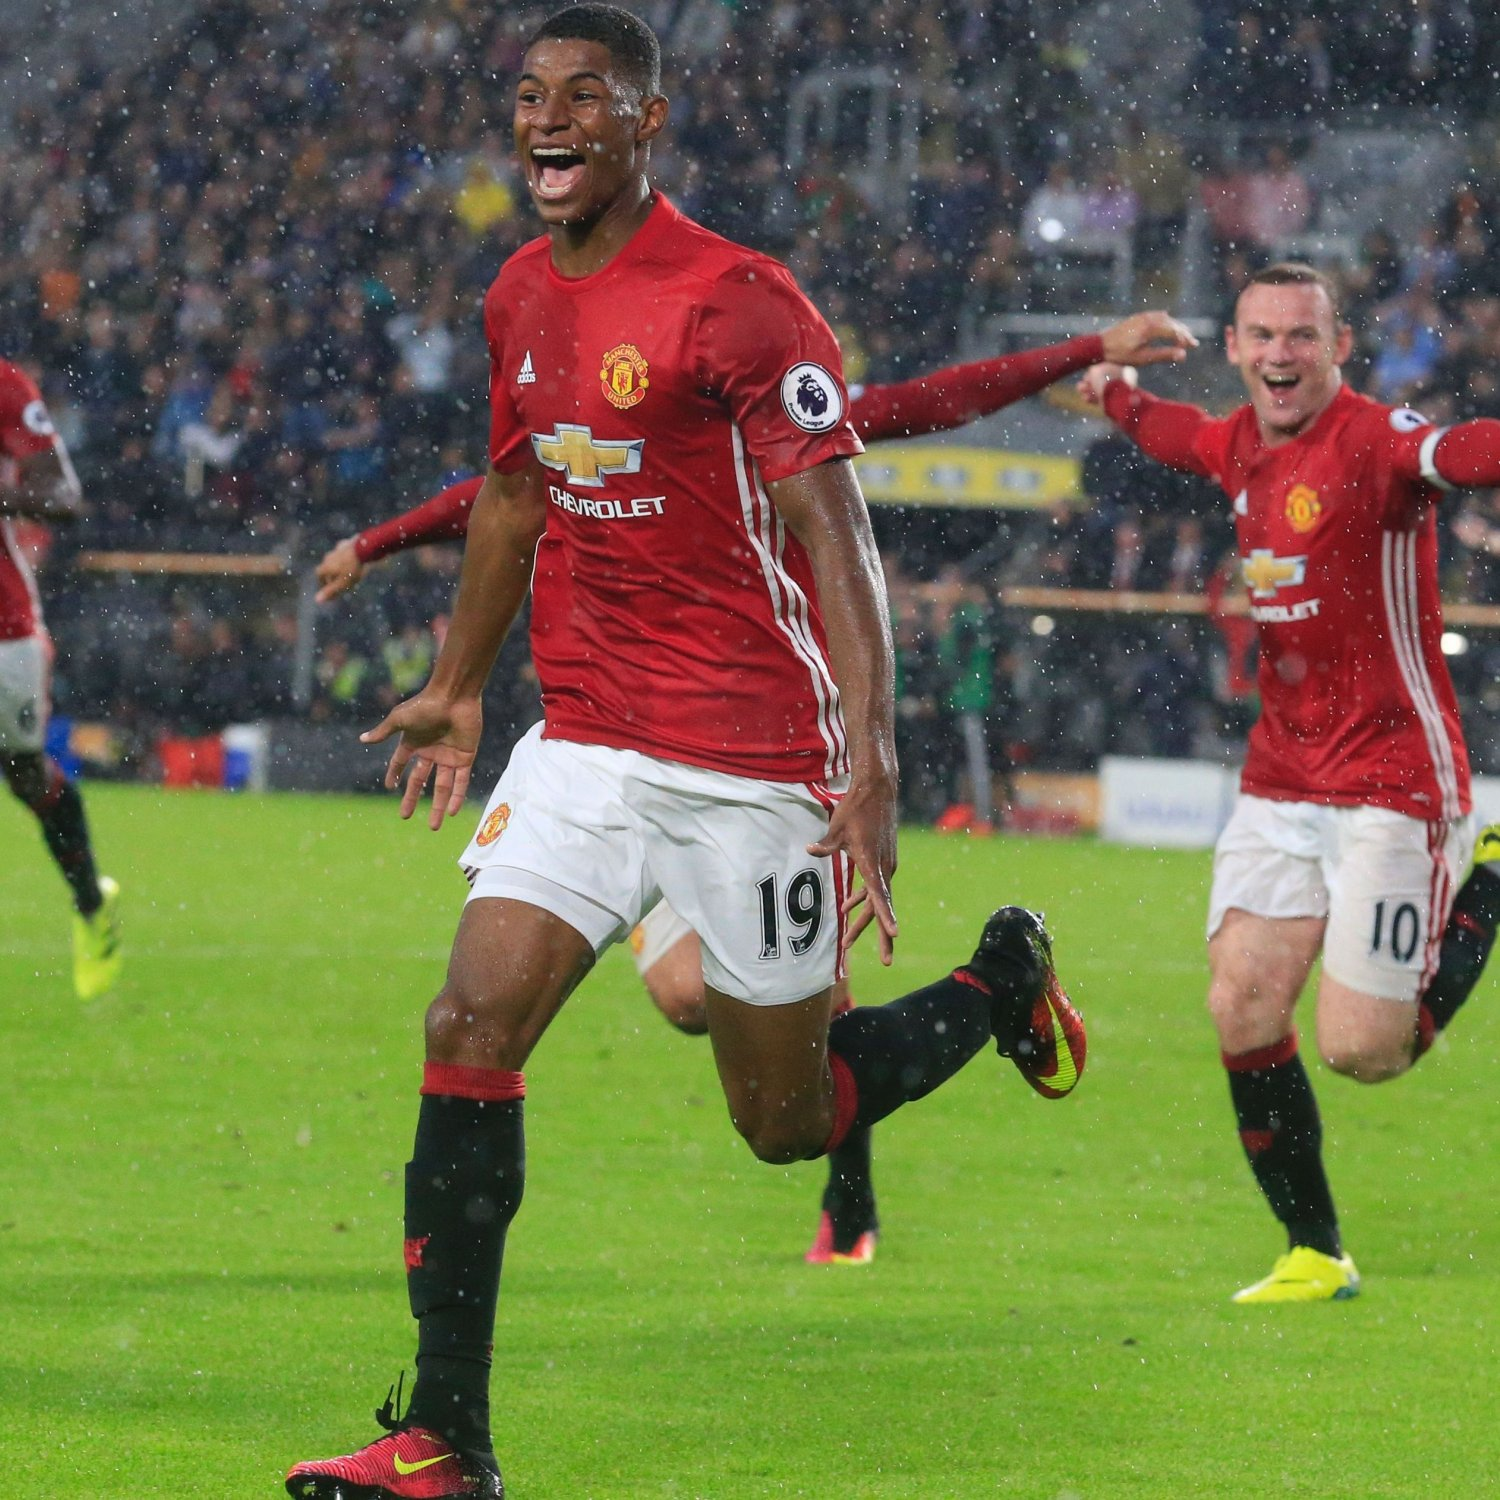 Epl results week 3 saturday 39 s 2016 premier league scores top scorers and table bleacher report - Epl results and table standing ...